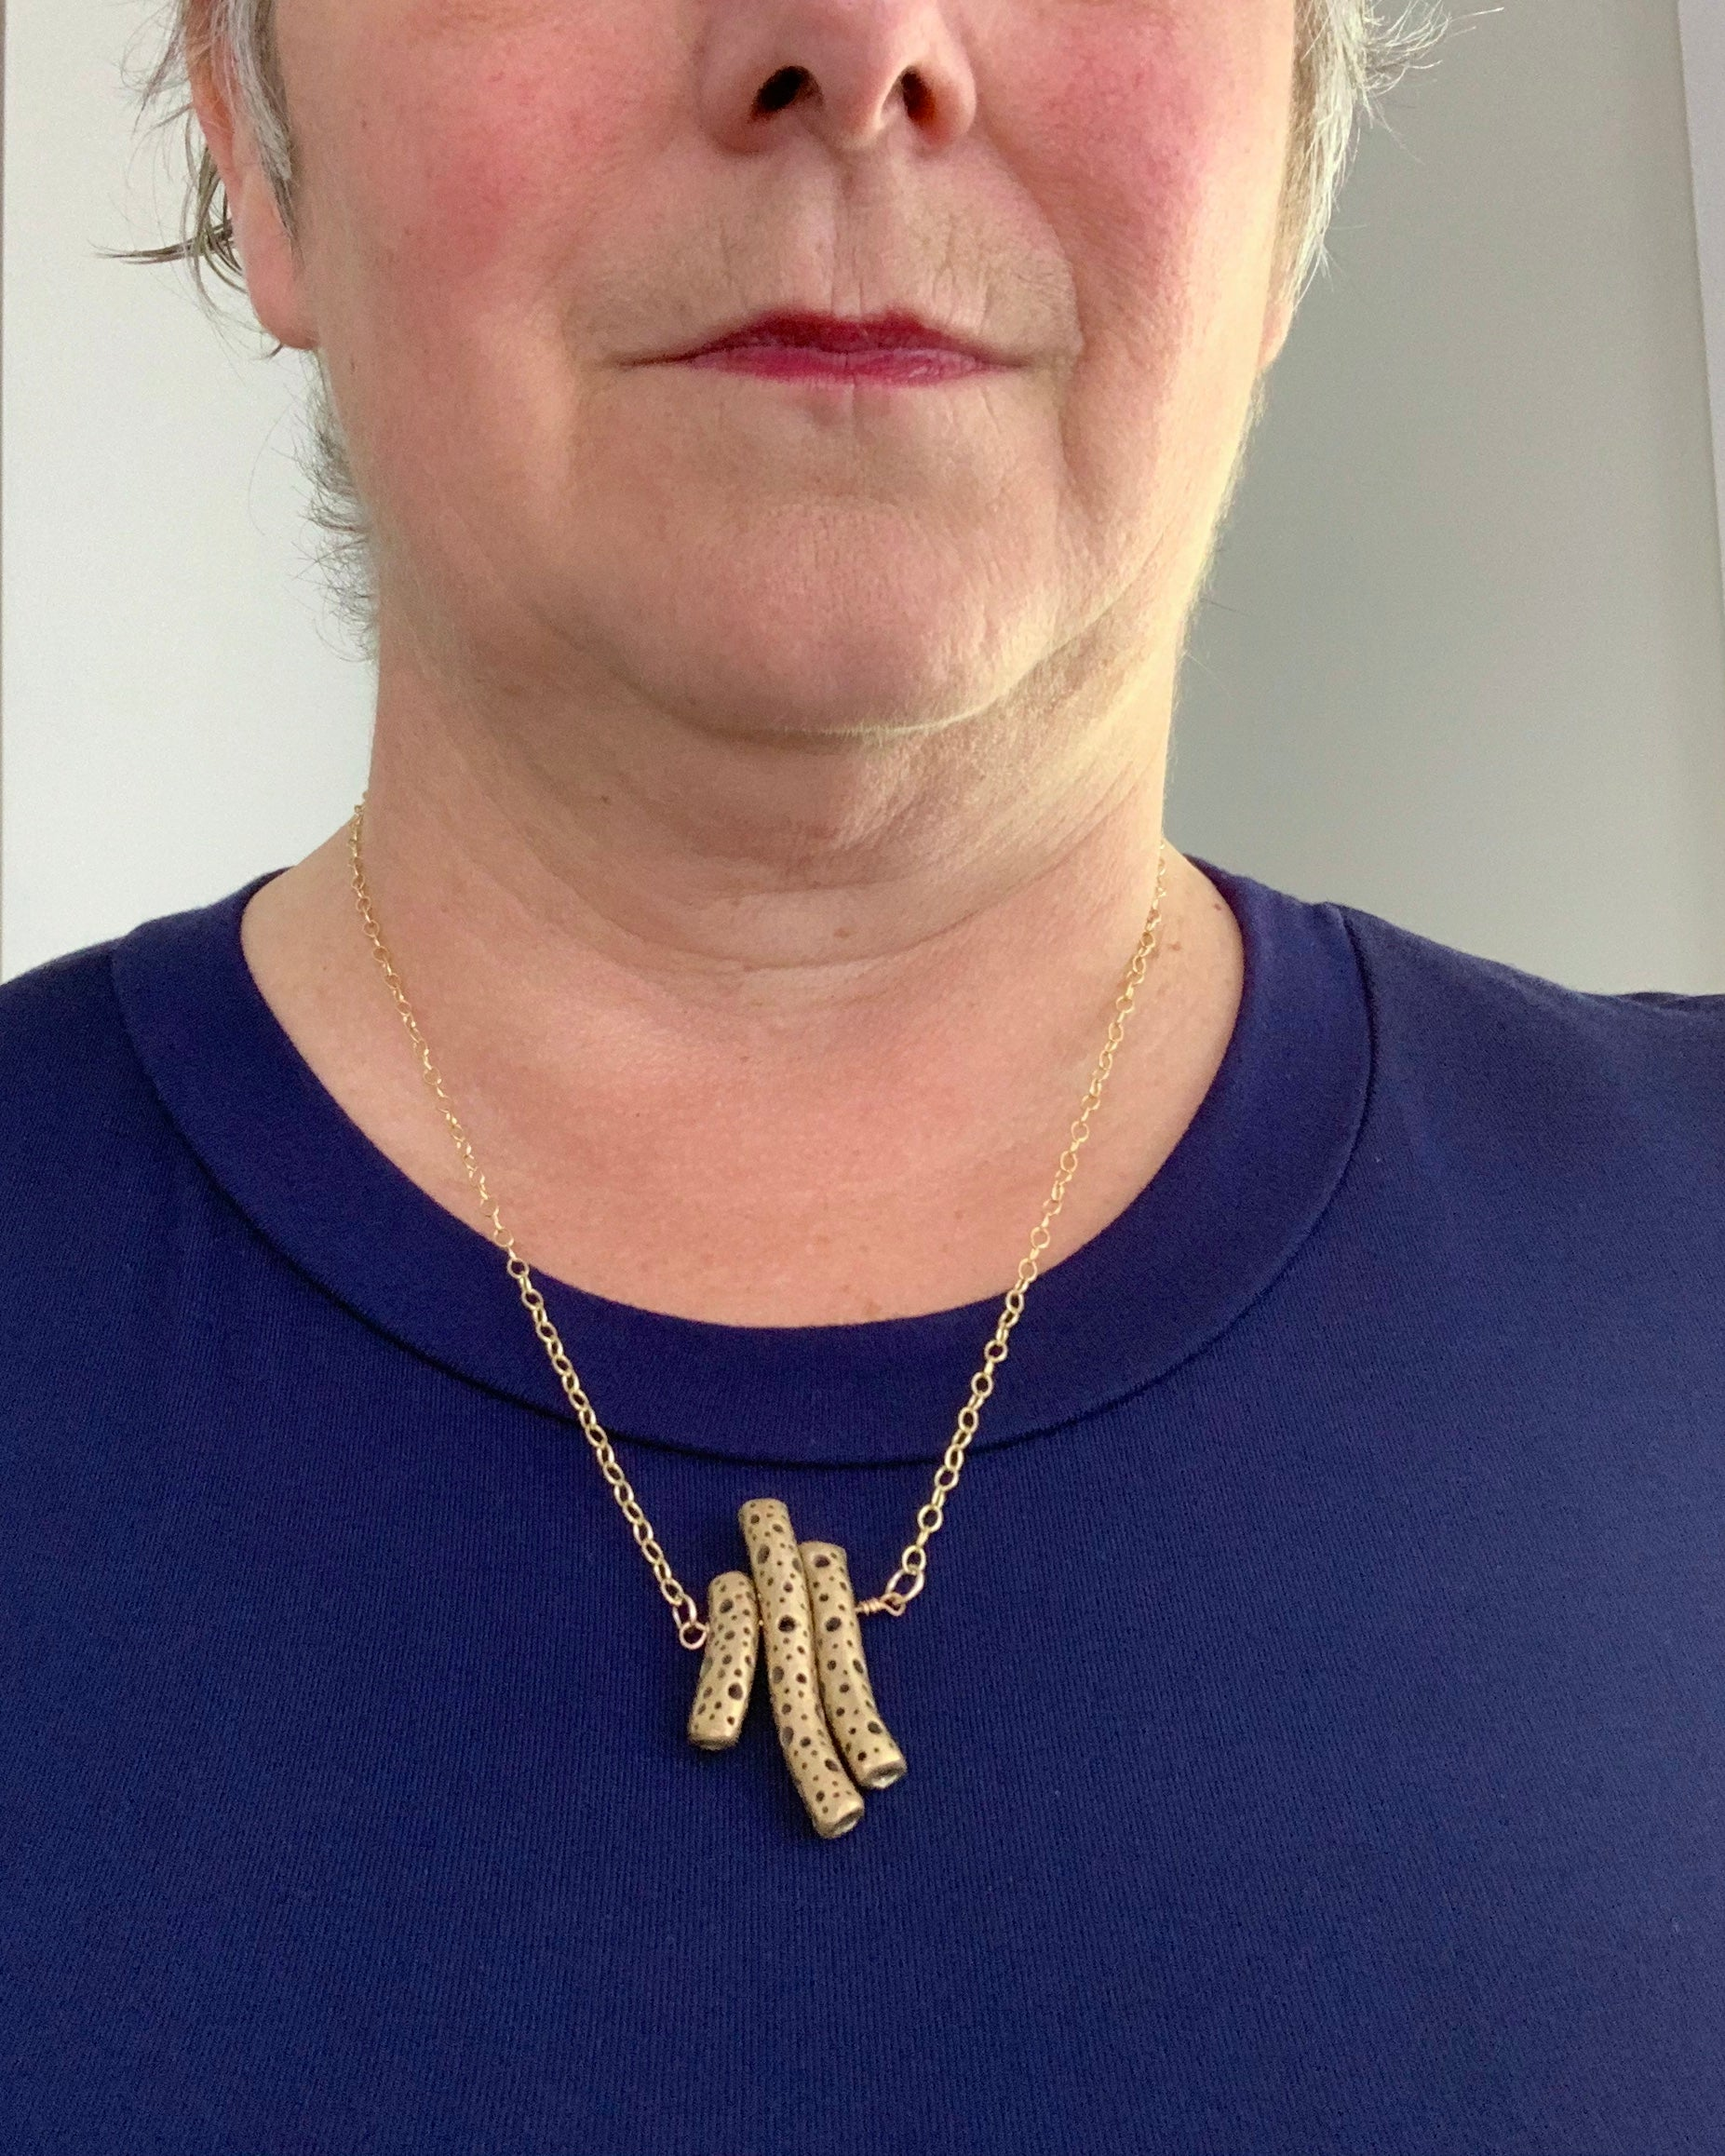 Royal blue shirt and bronze art jewelry necklace